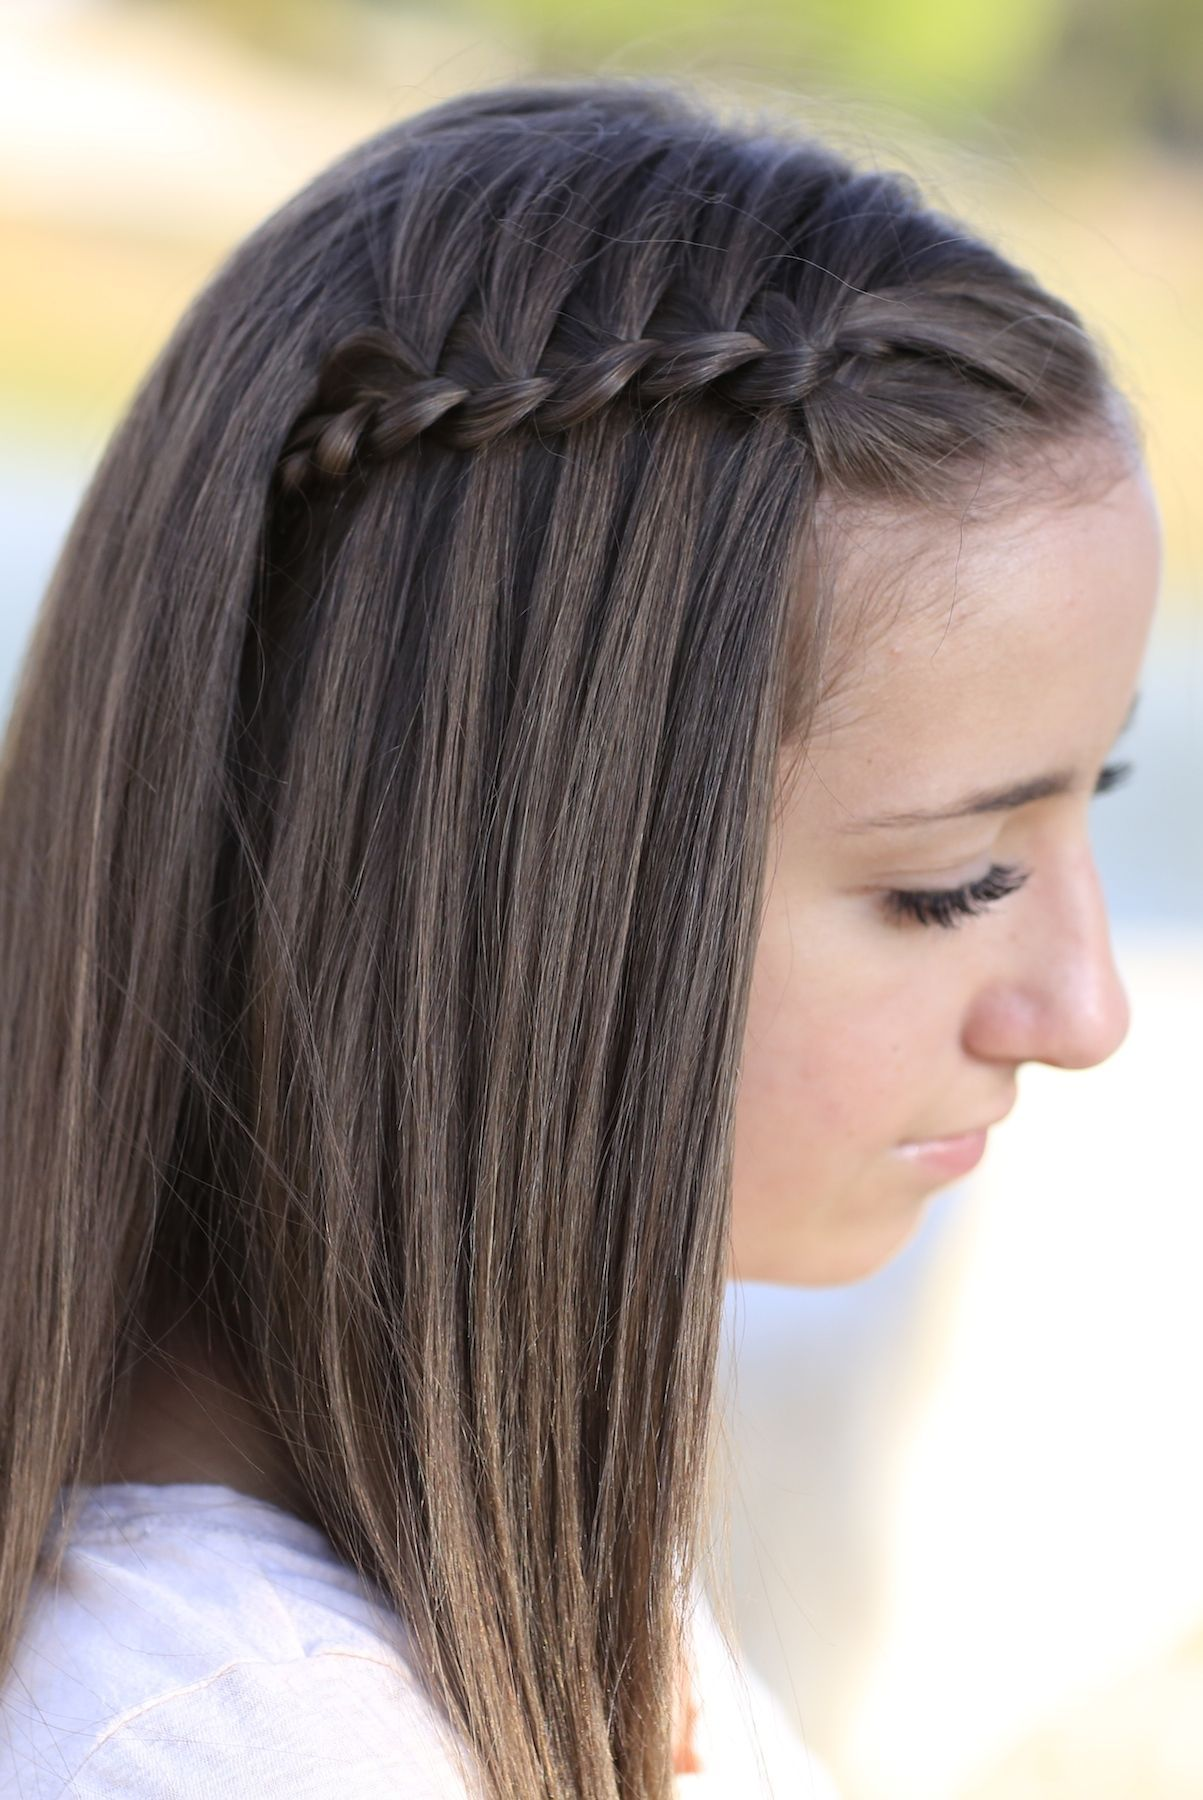 Cute Easy Hairstyles For 9 Year Olds Step By Step In 2020 Girl Hairstyles Cool Hairstyles For Girls Little Girl Hairstyles